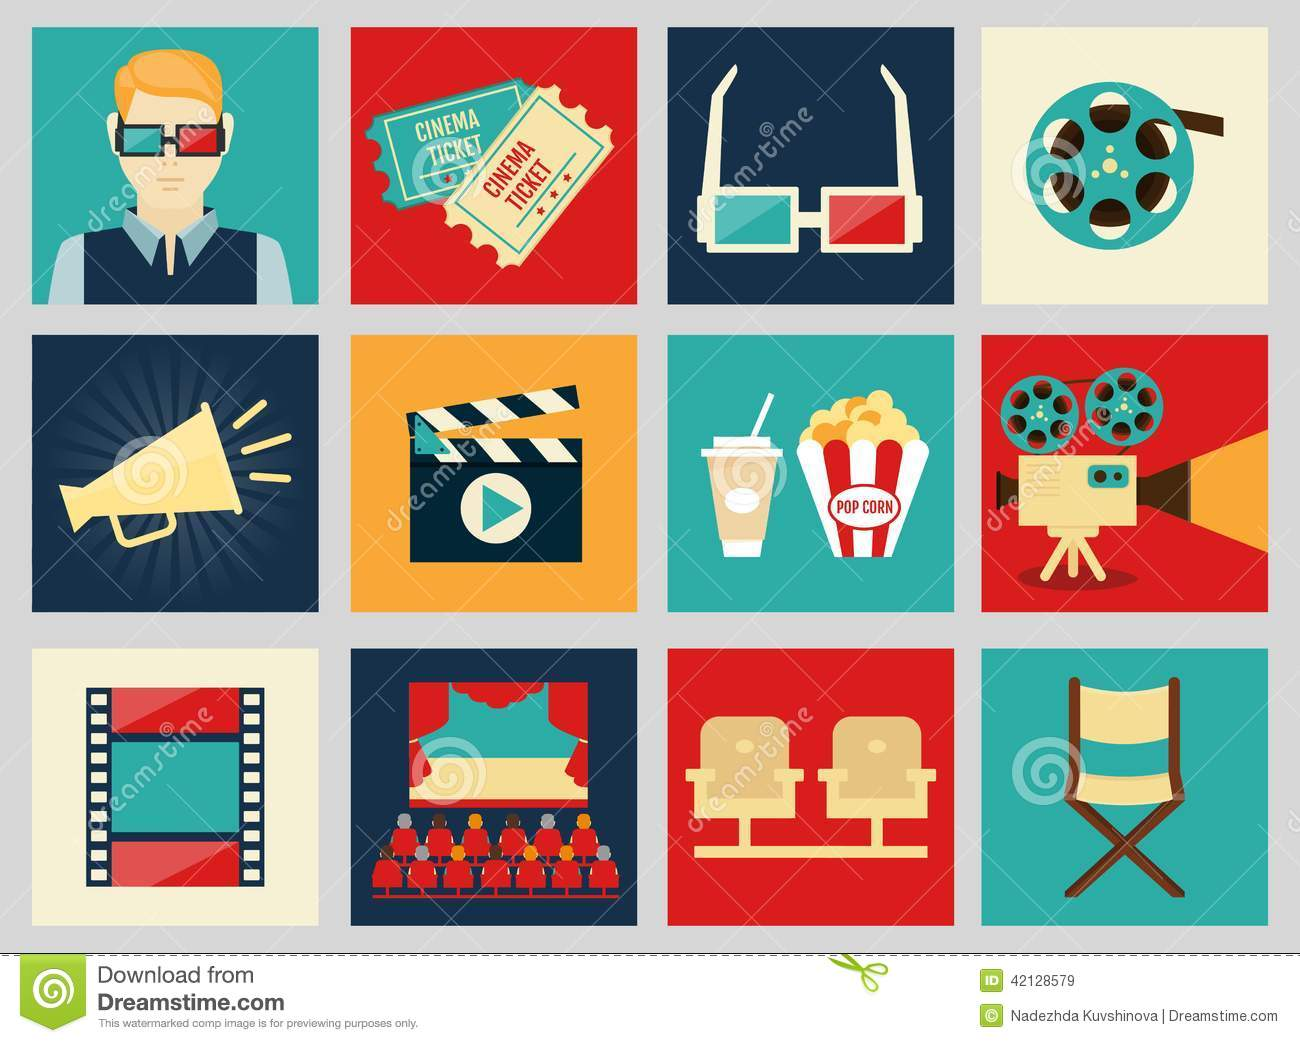 Elements of cinema